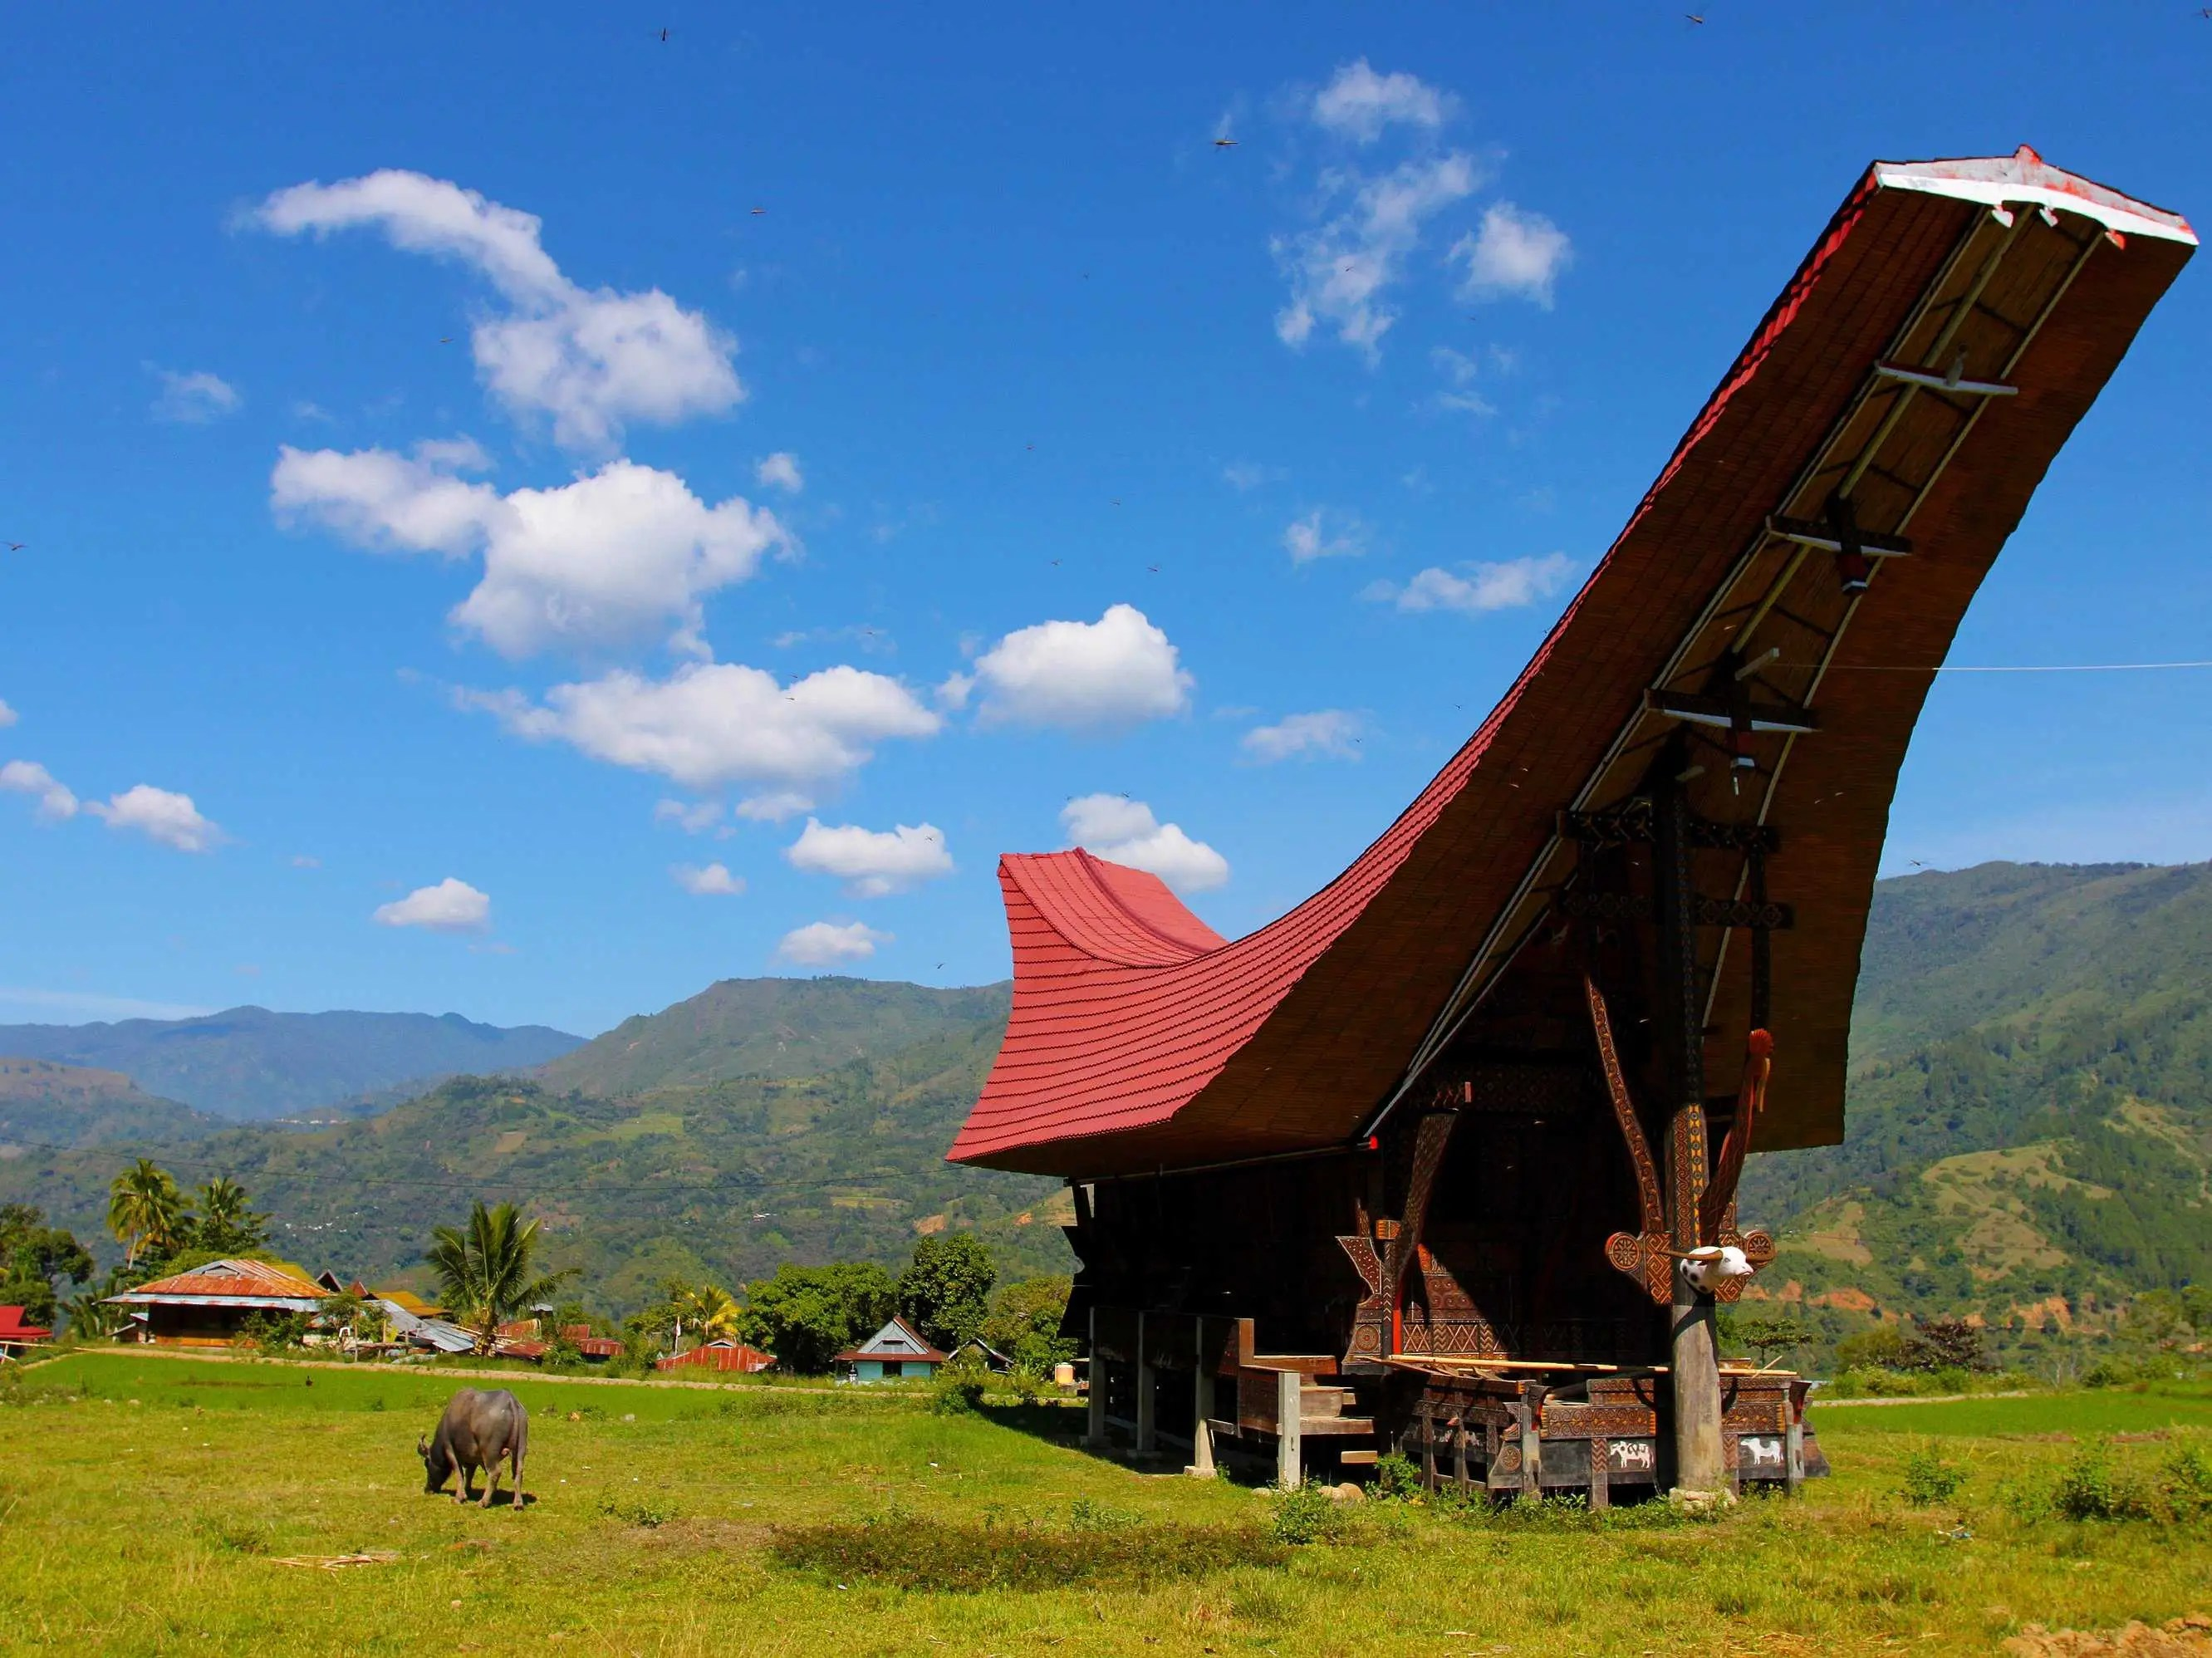 Step off the beaten path and visit the indigenous villages of Tana Toraja, Indonesia.